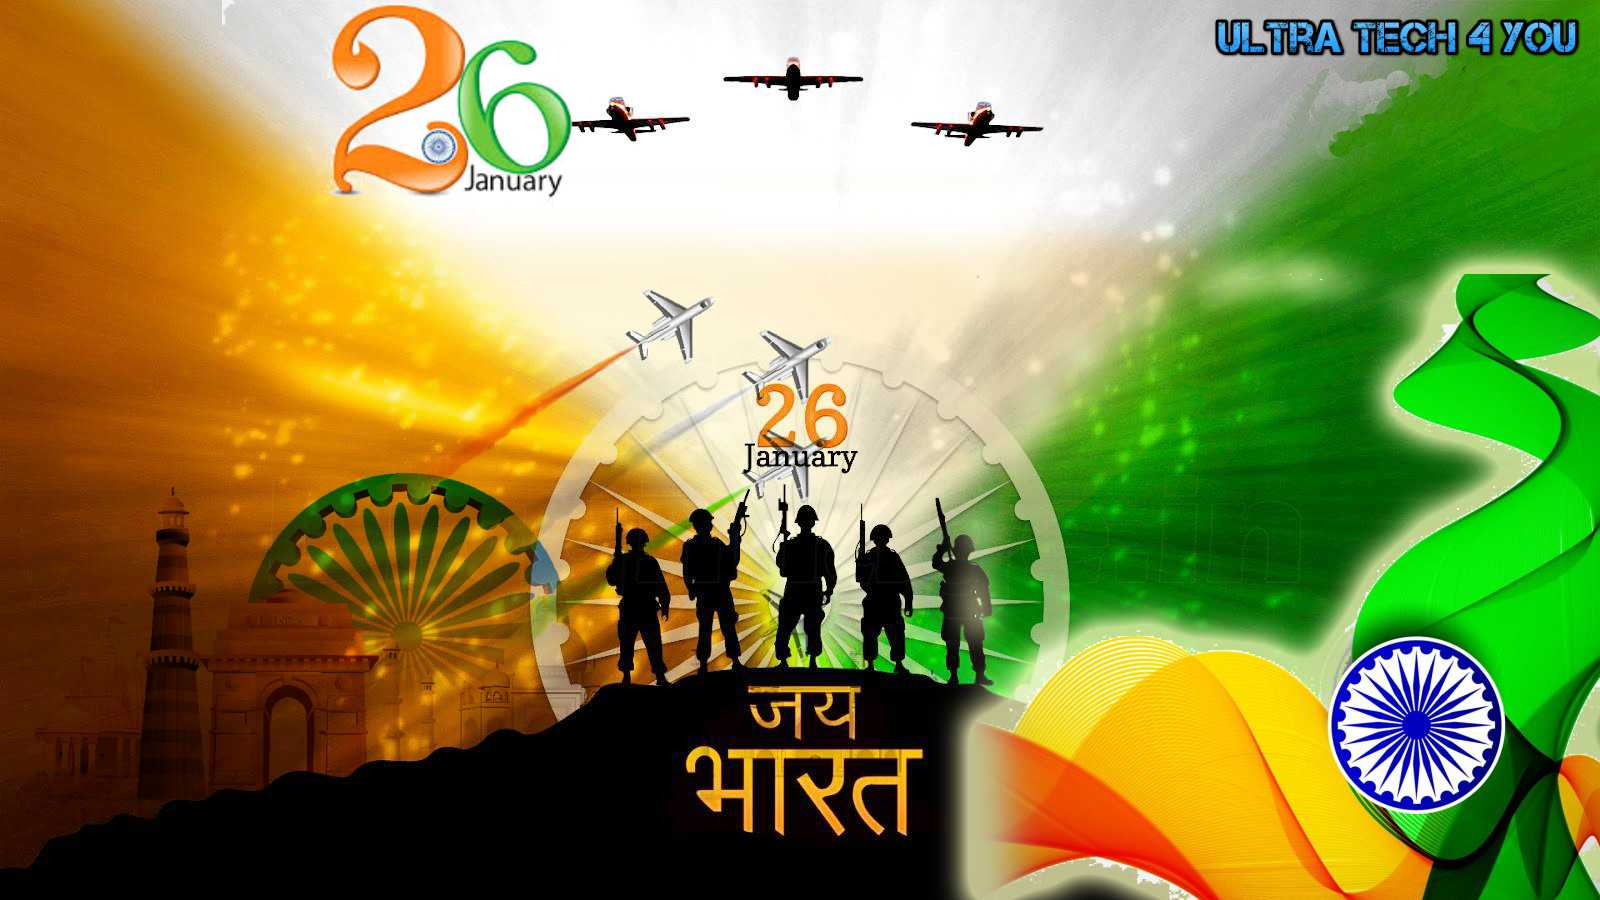 https://www.ultratech4you.com/2019/01/long-and-short-essay-on-republic-day.html